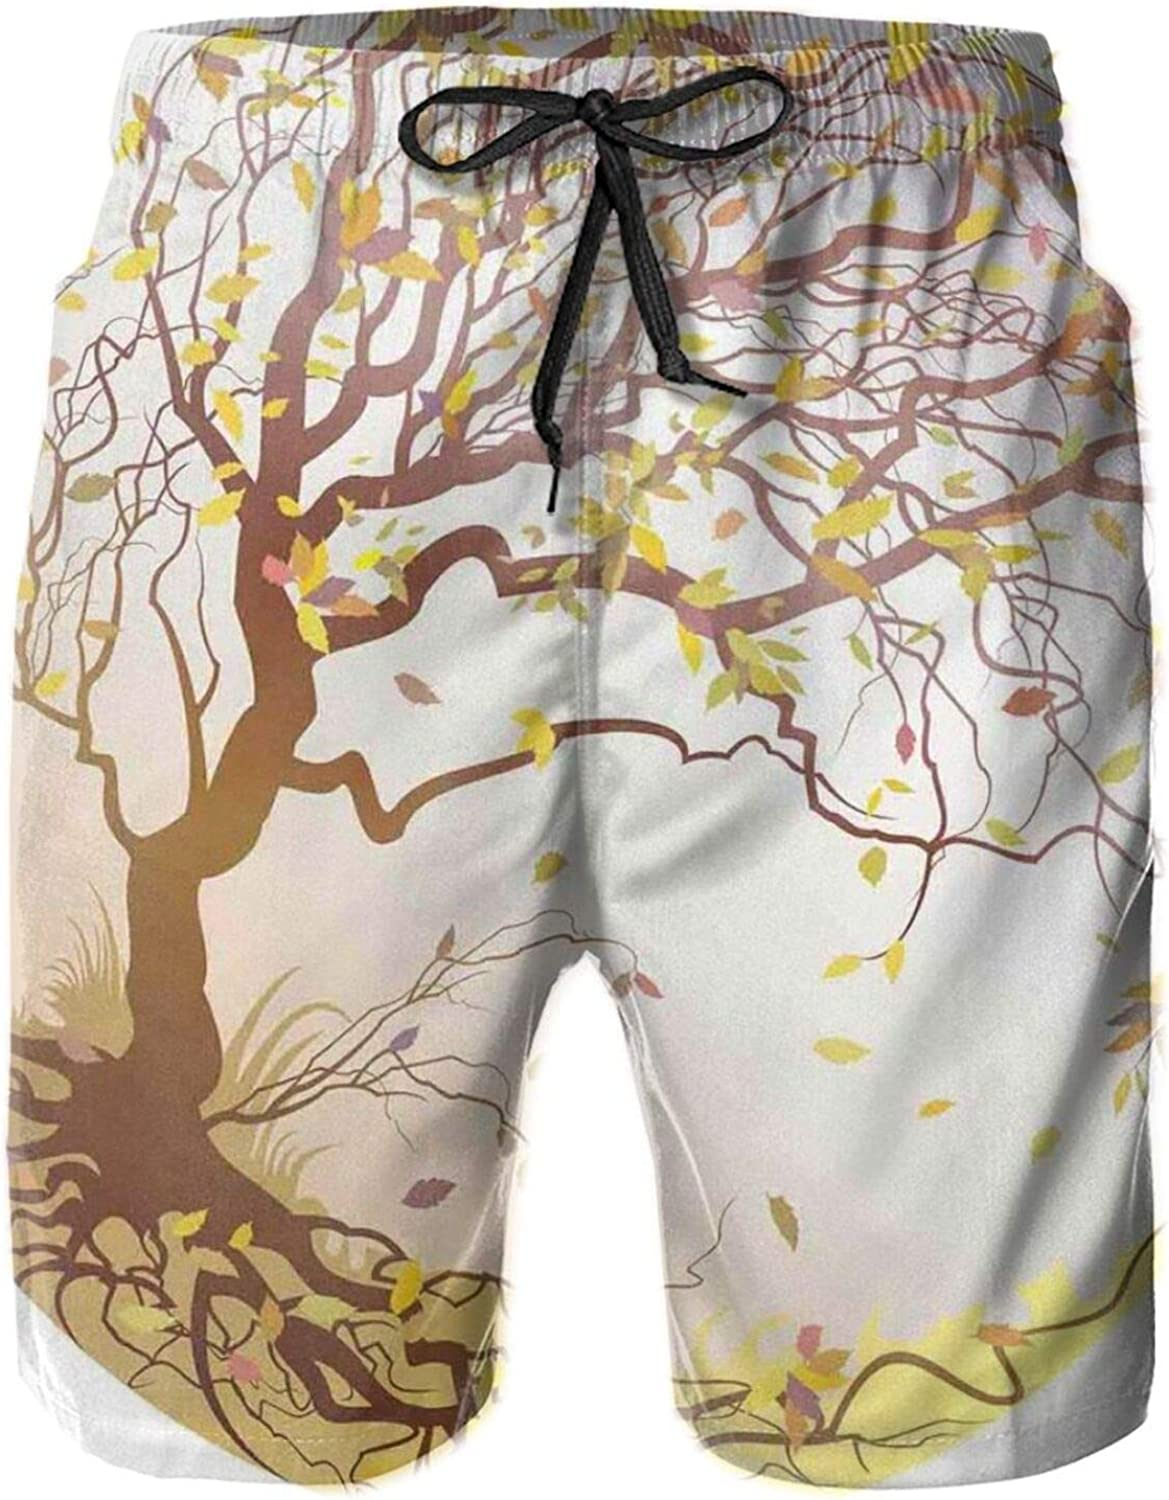 Autumn Tree On A Hill in Windy Weather Leaves Flying Fall Nature Circle Composition Mens Swim Trucks Shorts with Mesh Lining,M